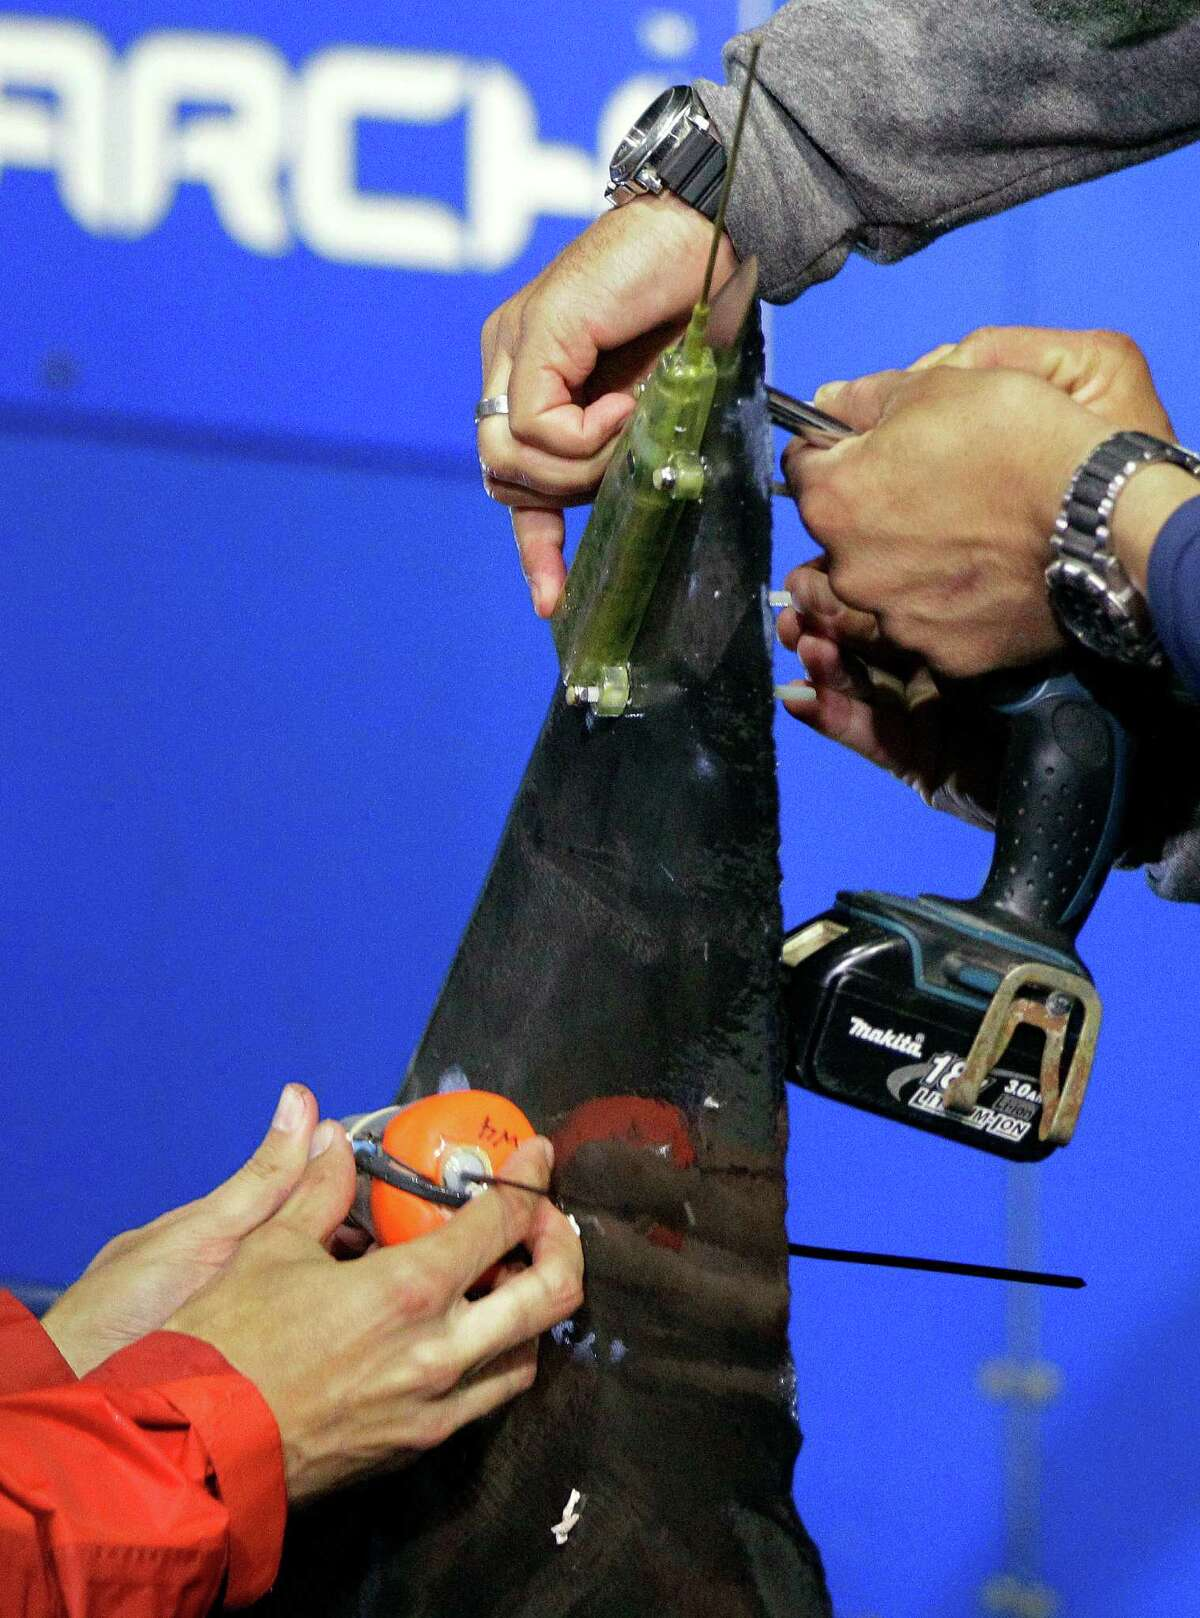 In this Sept. 13, 2012, photo, researchers screw satellite and acoustic tags onto the dorsal fin of a great white shark on the research vessel Ocearch in the Atlantic Ocean off the coast of Chatham, Mass. Once released, the tags will track the location and speed of the nearly 15-foot, 2,292-pound Genie, named for famed shark researcher Eugenie Clark. The Ocearch team baits the fish and leads them onto a lift, tagging and taking blood, tissue and semen samples up close from the worldÃ'Â's most feared predator. The real-time satellite tag tracks the shark each time its dorsal fin breaks the surface, plotting its location on a map.